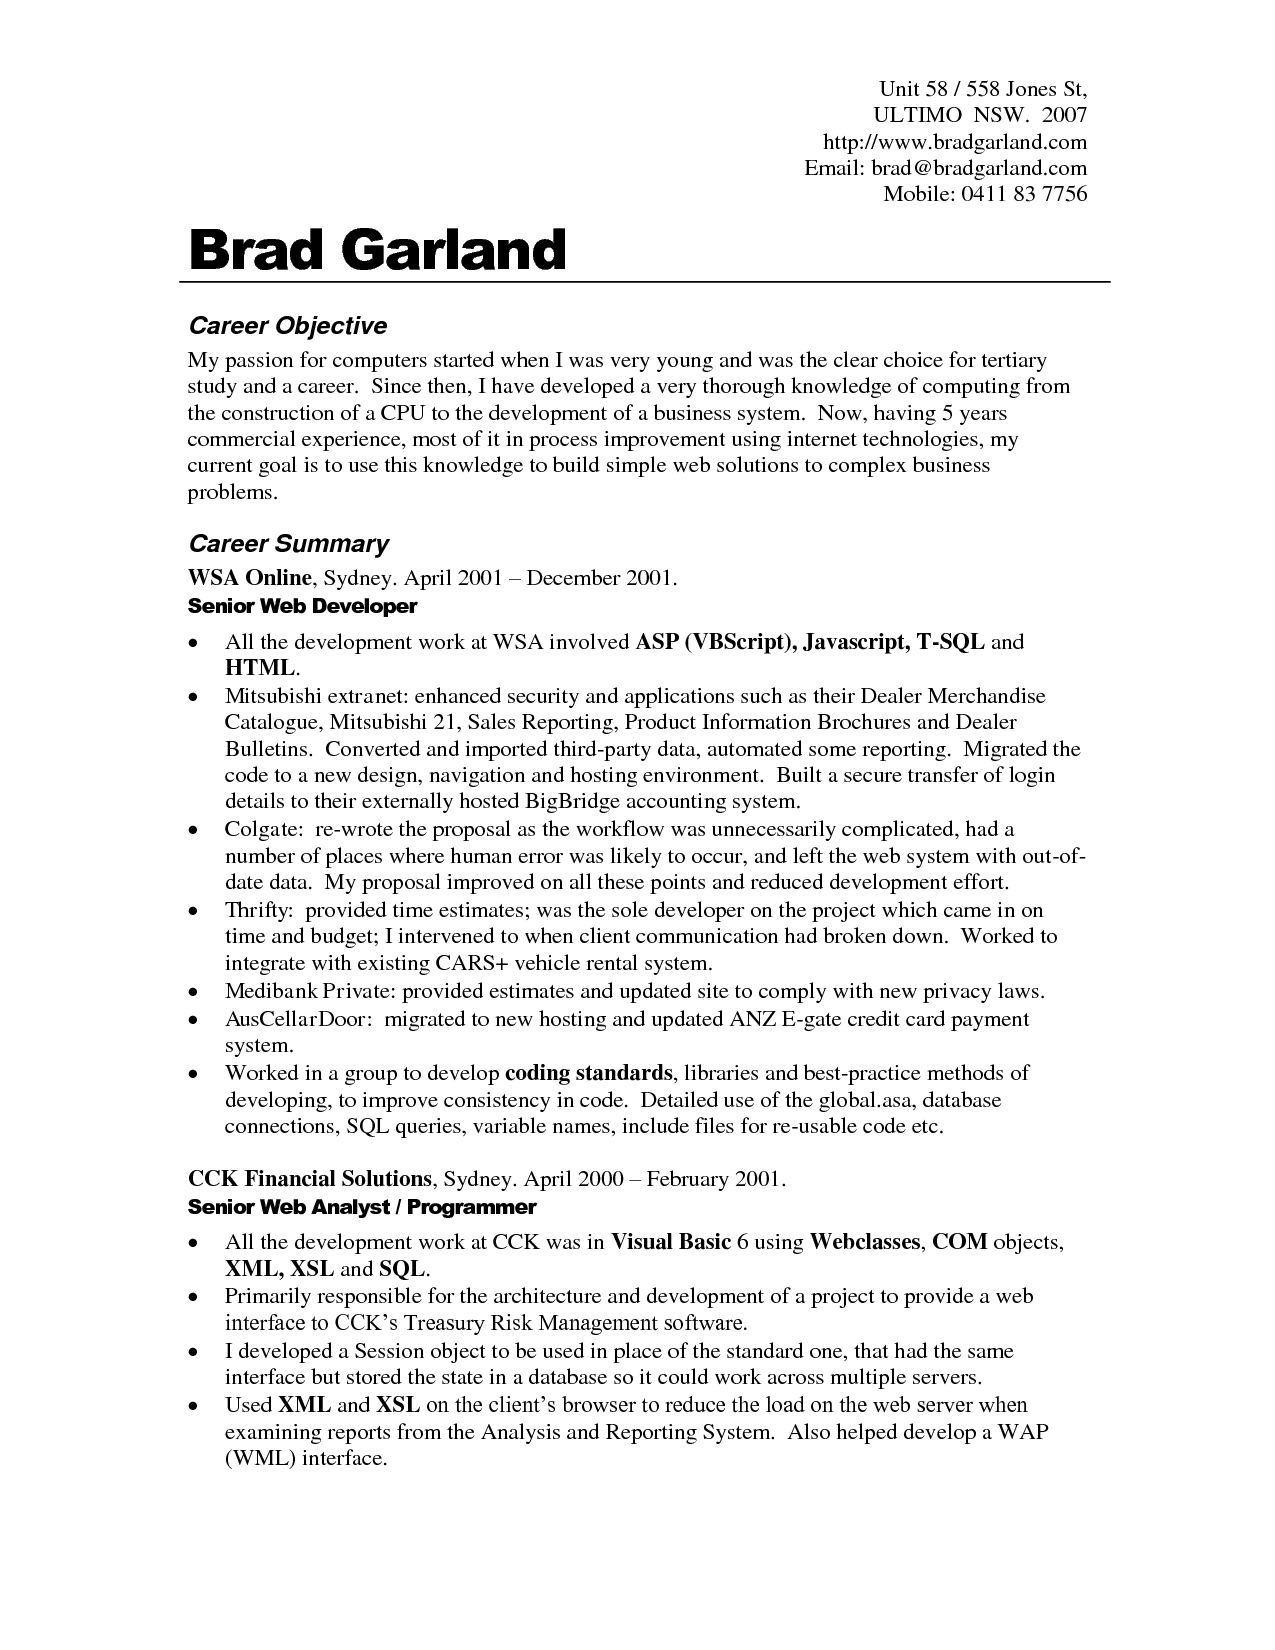 Good Career Objective Resume Extraordinary Resume Examples Job Objective  Sample Resume Entry Level And .